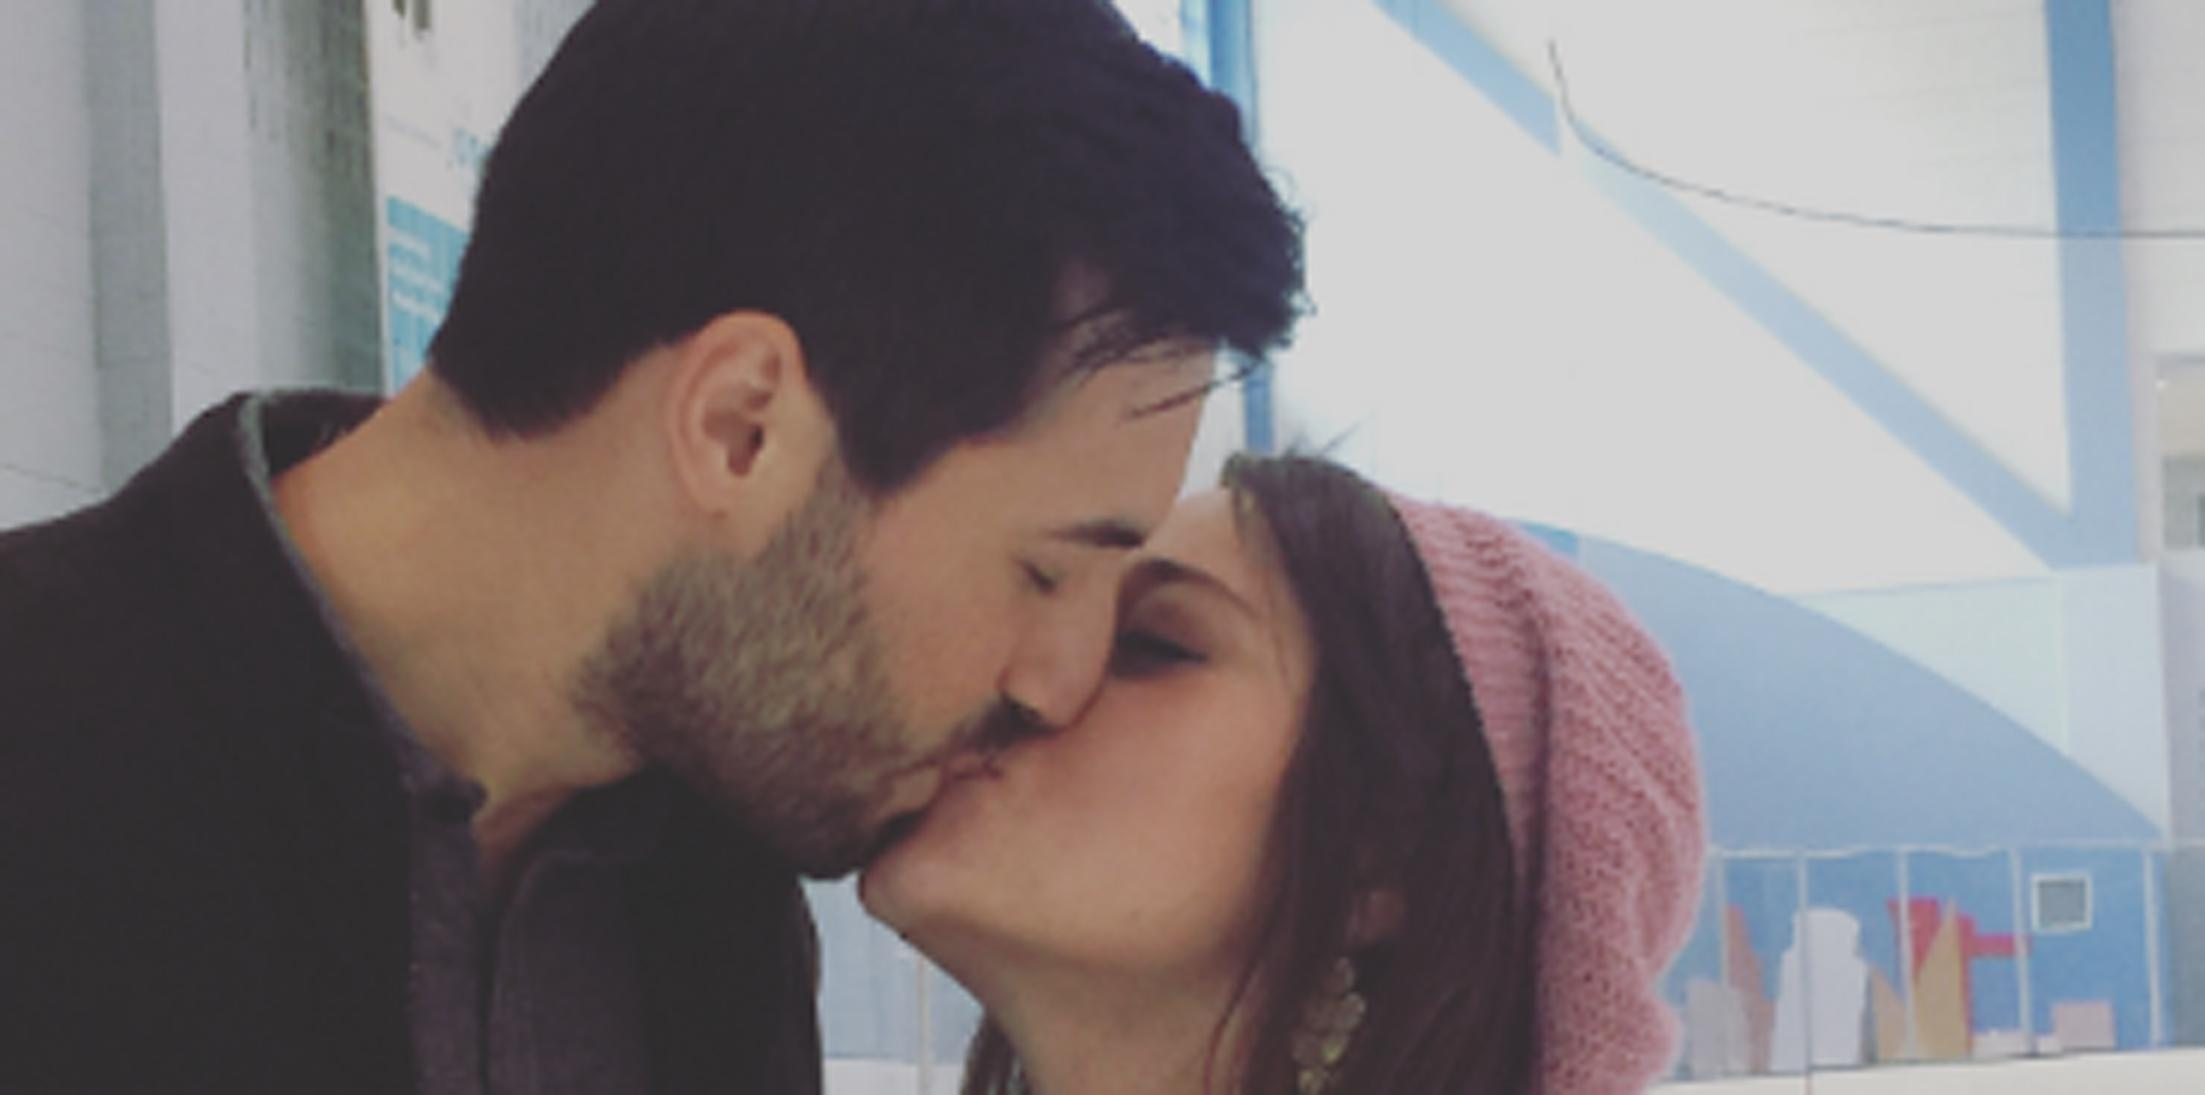 Jinger duggar jeremy vuolo first time experience together kissing pda filled hero